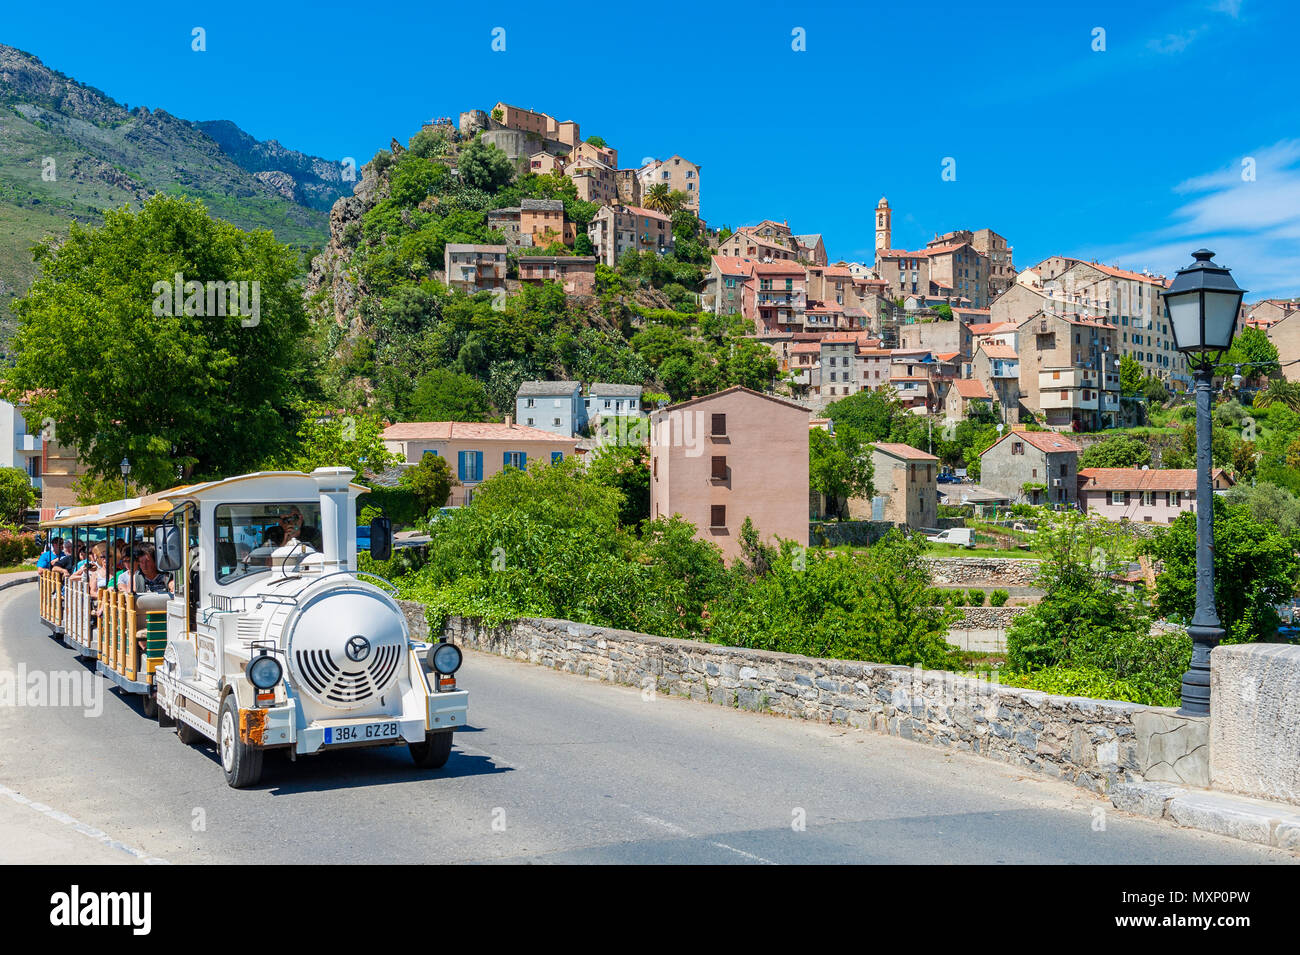 Tourist Train driving through Street in Corte, Corsica, France. Corte is best known for its Citadel and University. - Stock Image